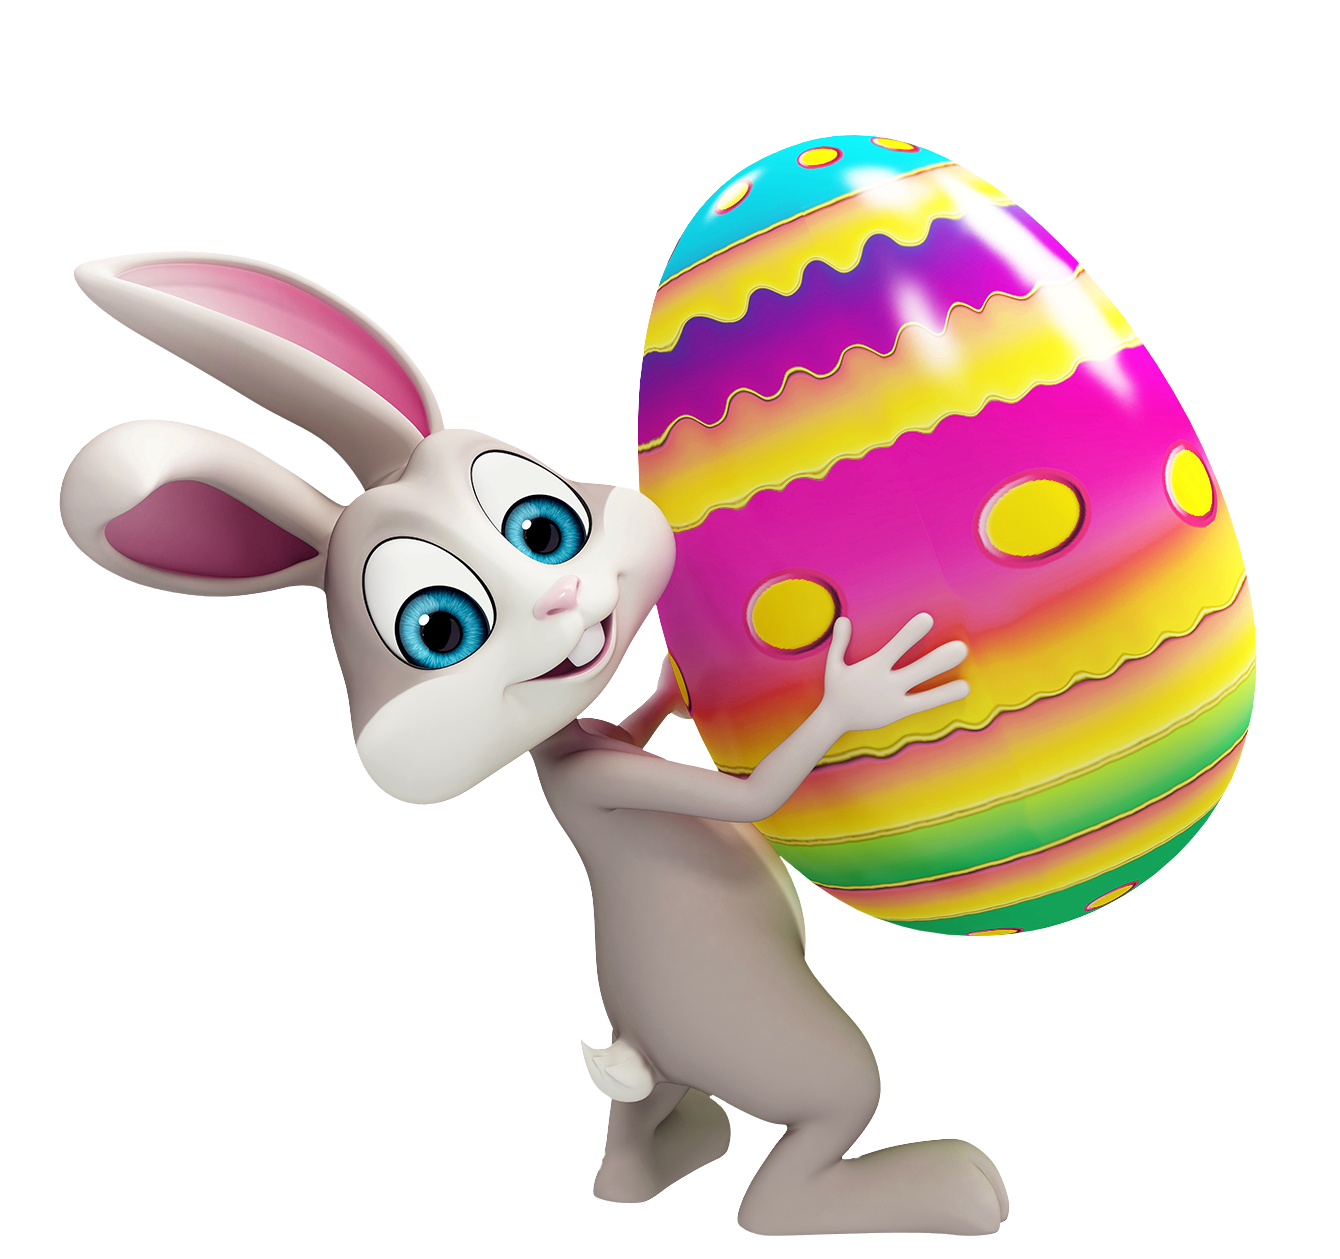 Easter_Bunny_with_Colorful_Egg_Transparent_PNG_Clipart-1